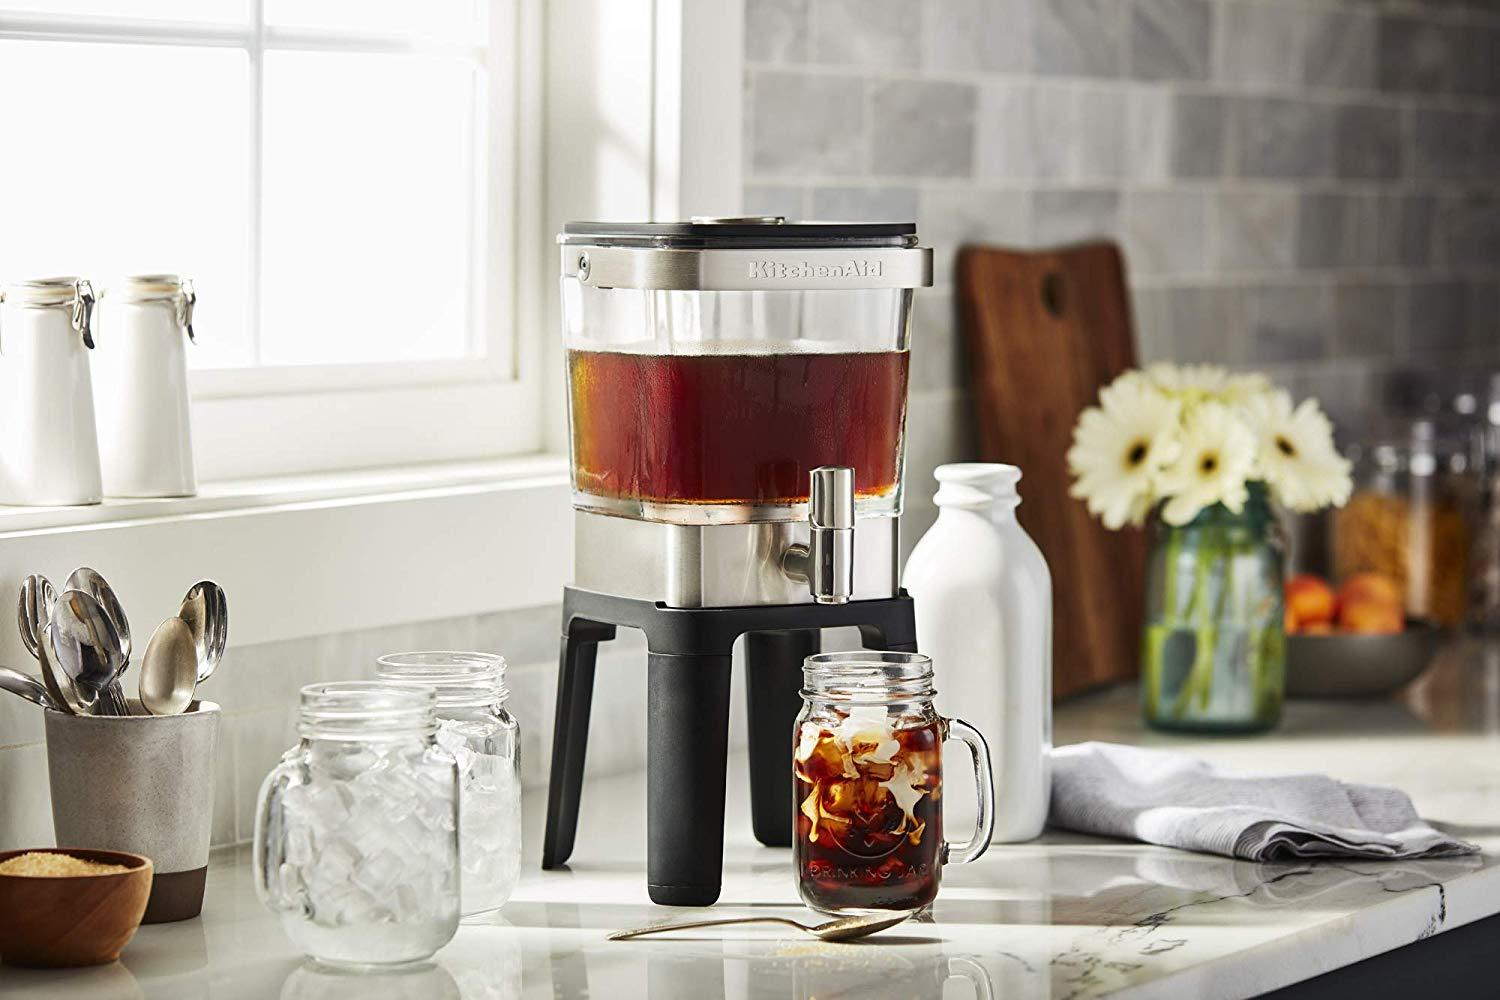 KitchenAid Cold Brew Coffee Maker is on sale at Amazon